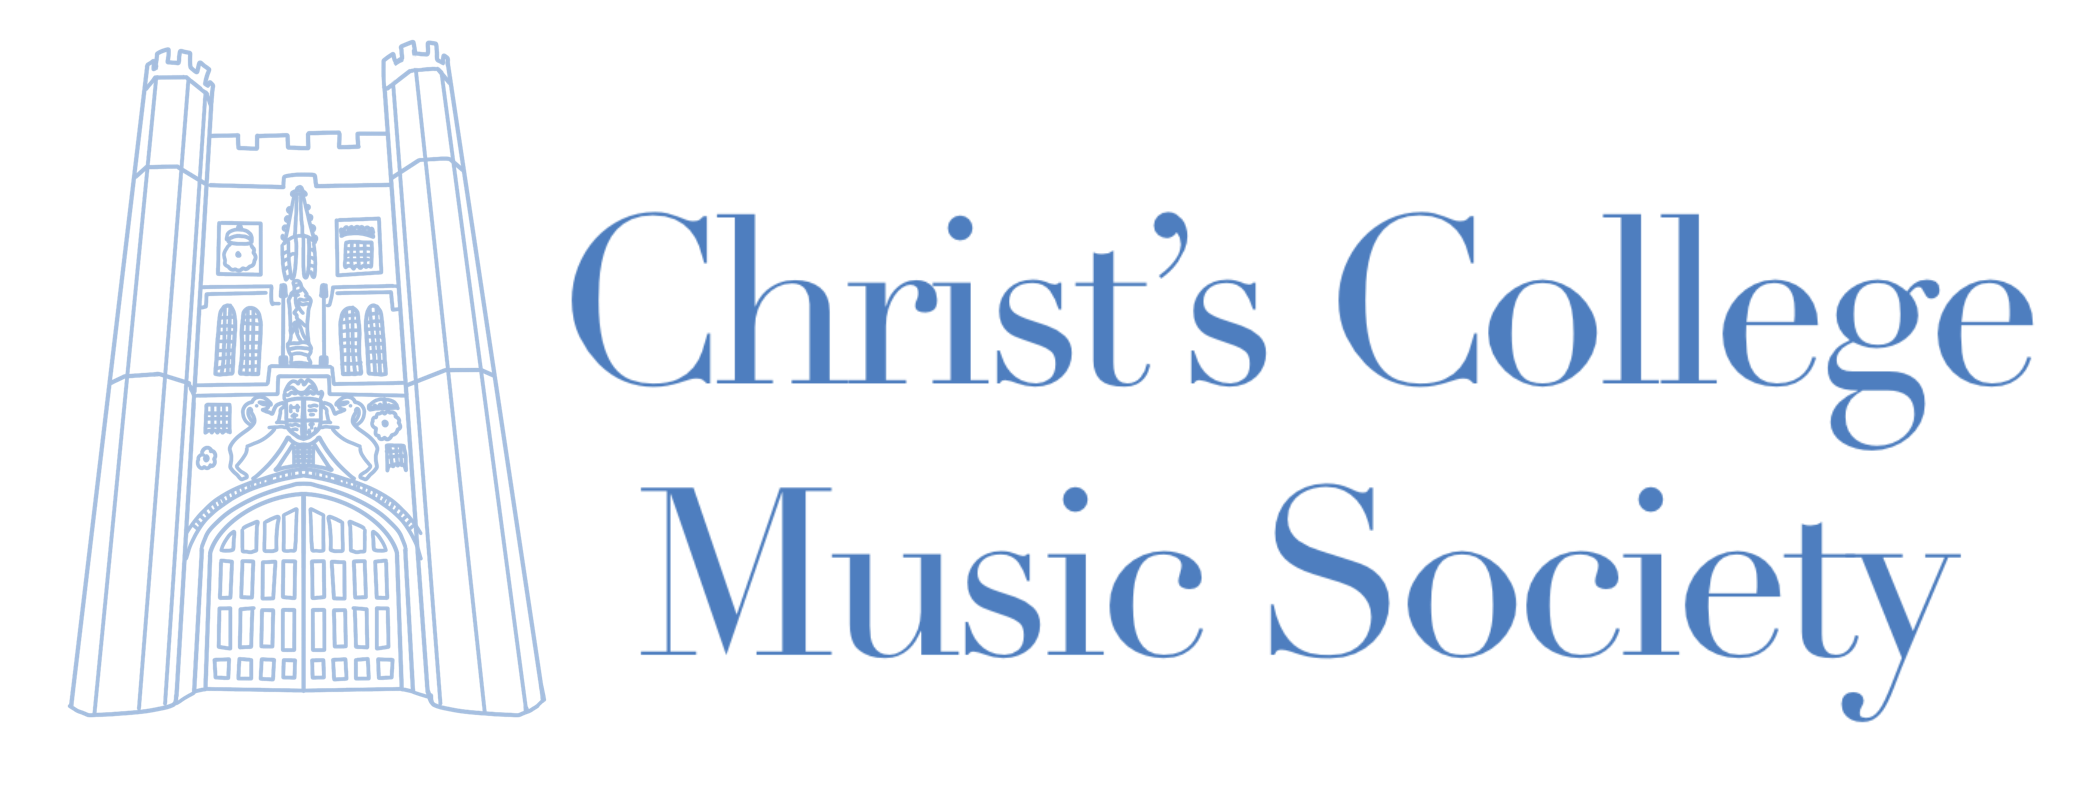 Christ's College Music Society